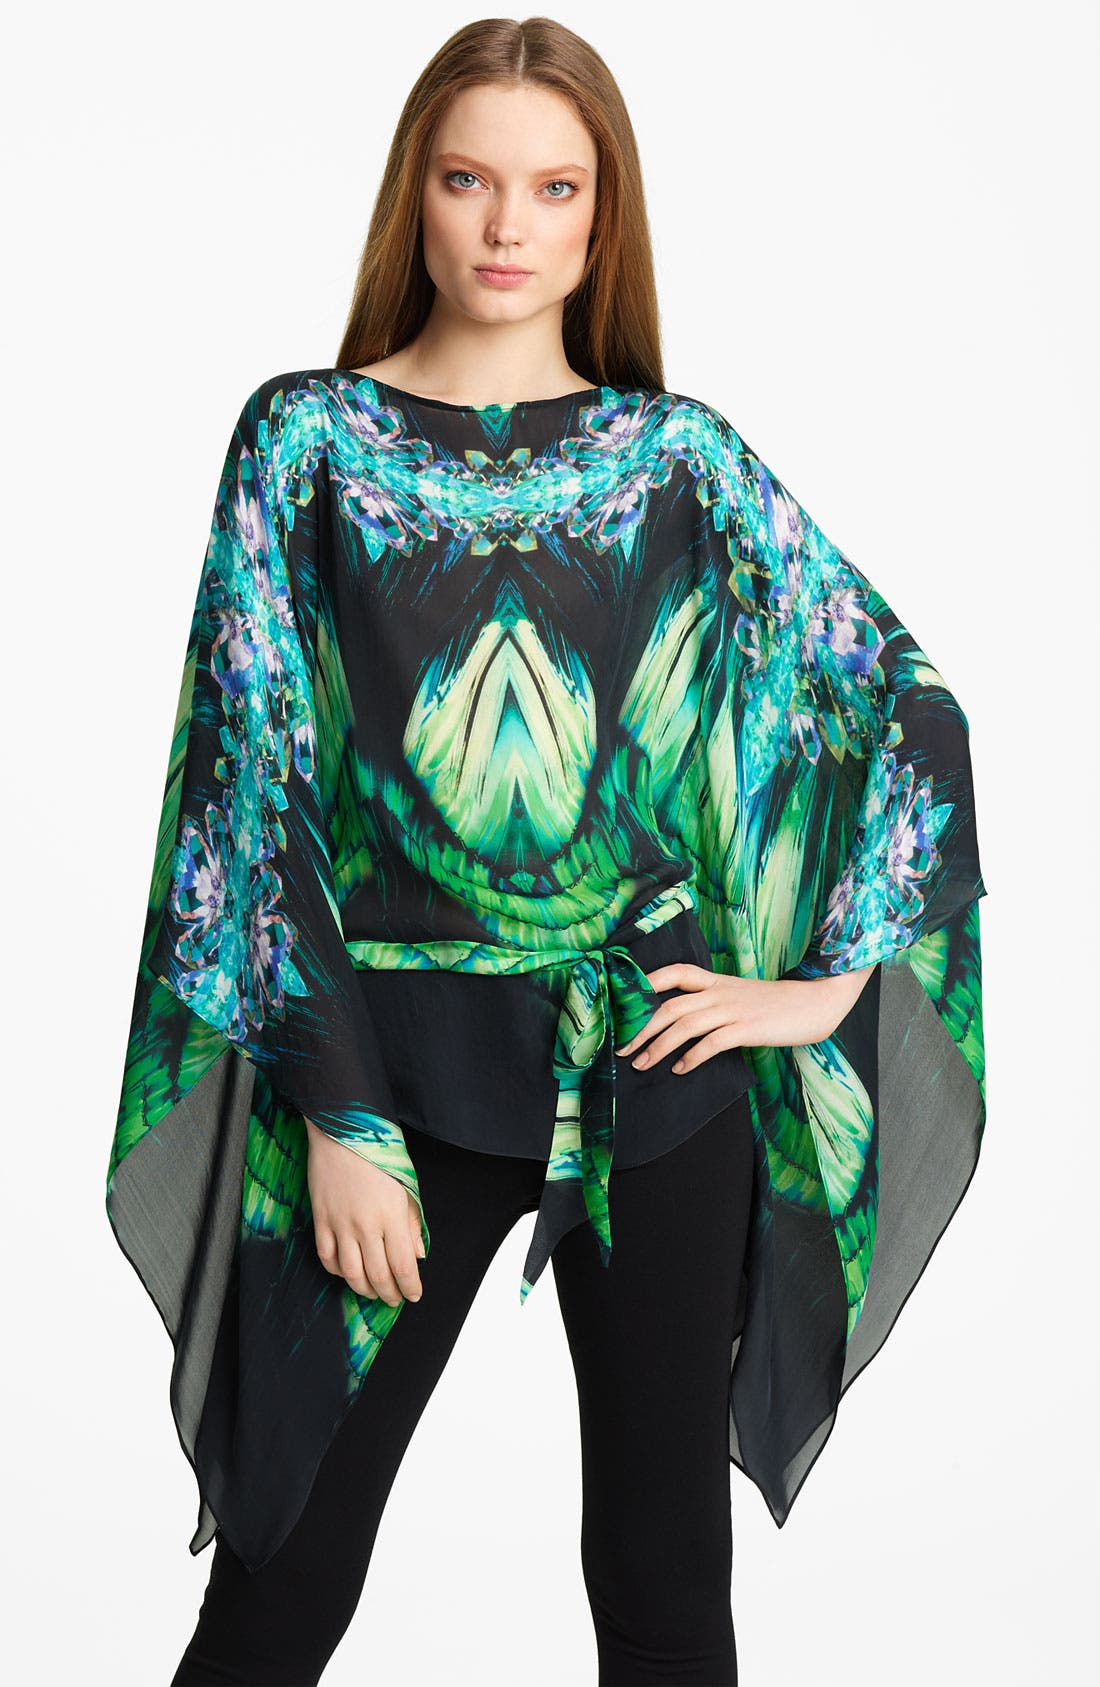 Alternate Image 1 Selected - Roberto Cavalli Geometric Print Chiffon Caftan